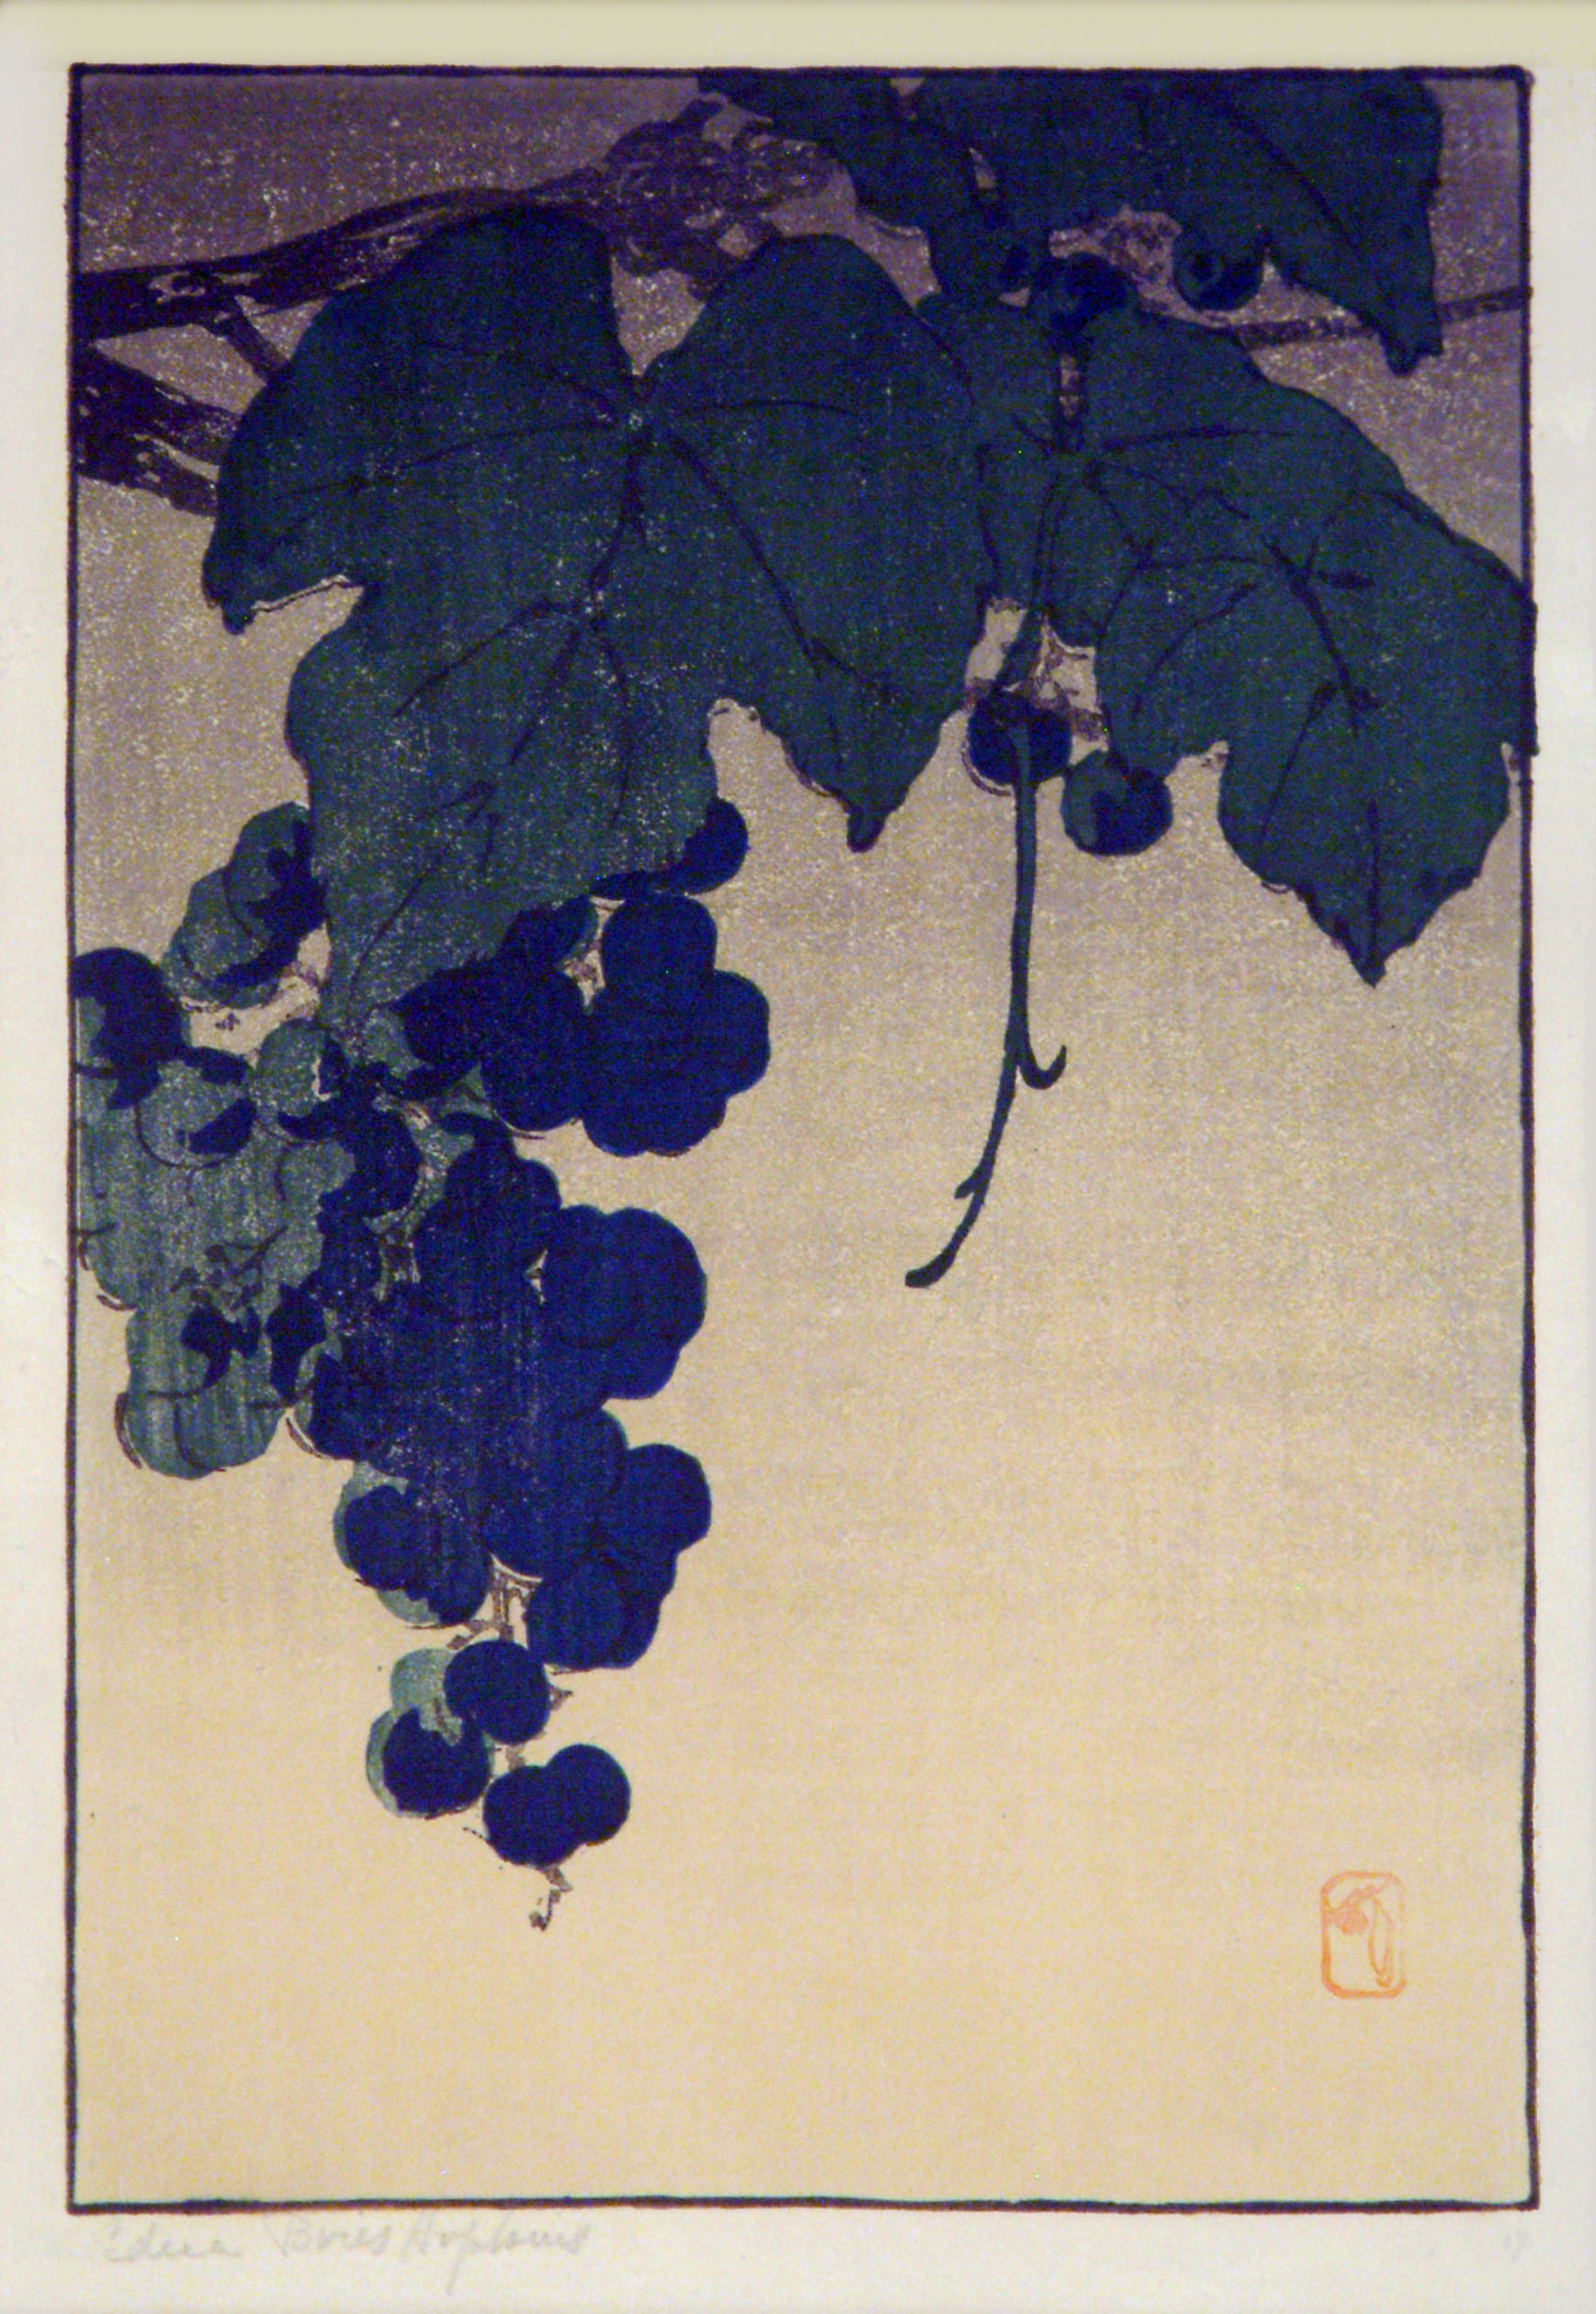 Edna Boies Hopkins   GRAPES   color woodcut   10-7/8 x 7-1/4''   c.1907-09   Private collection, Courtesy of Keny Galleries